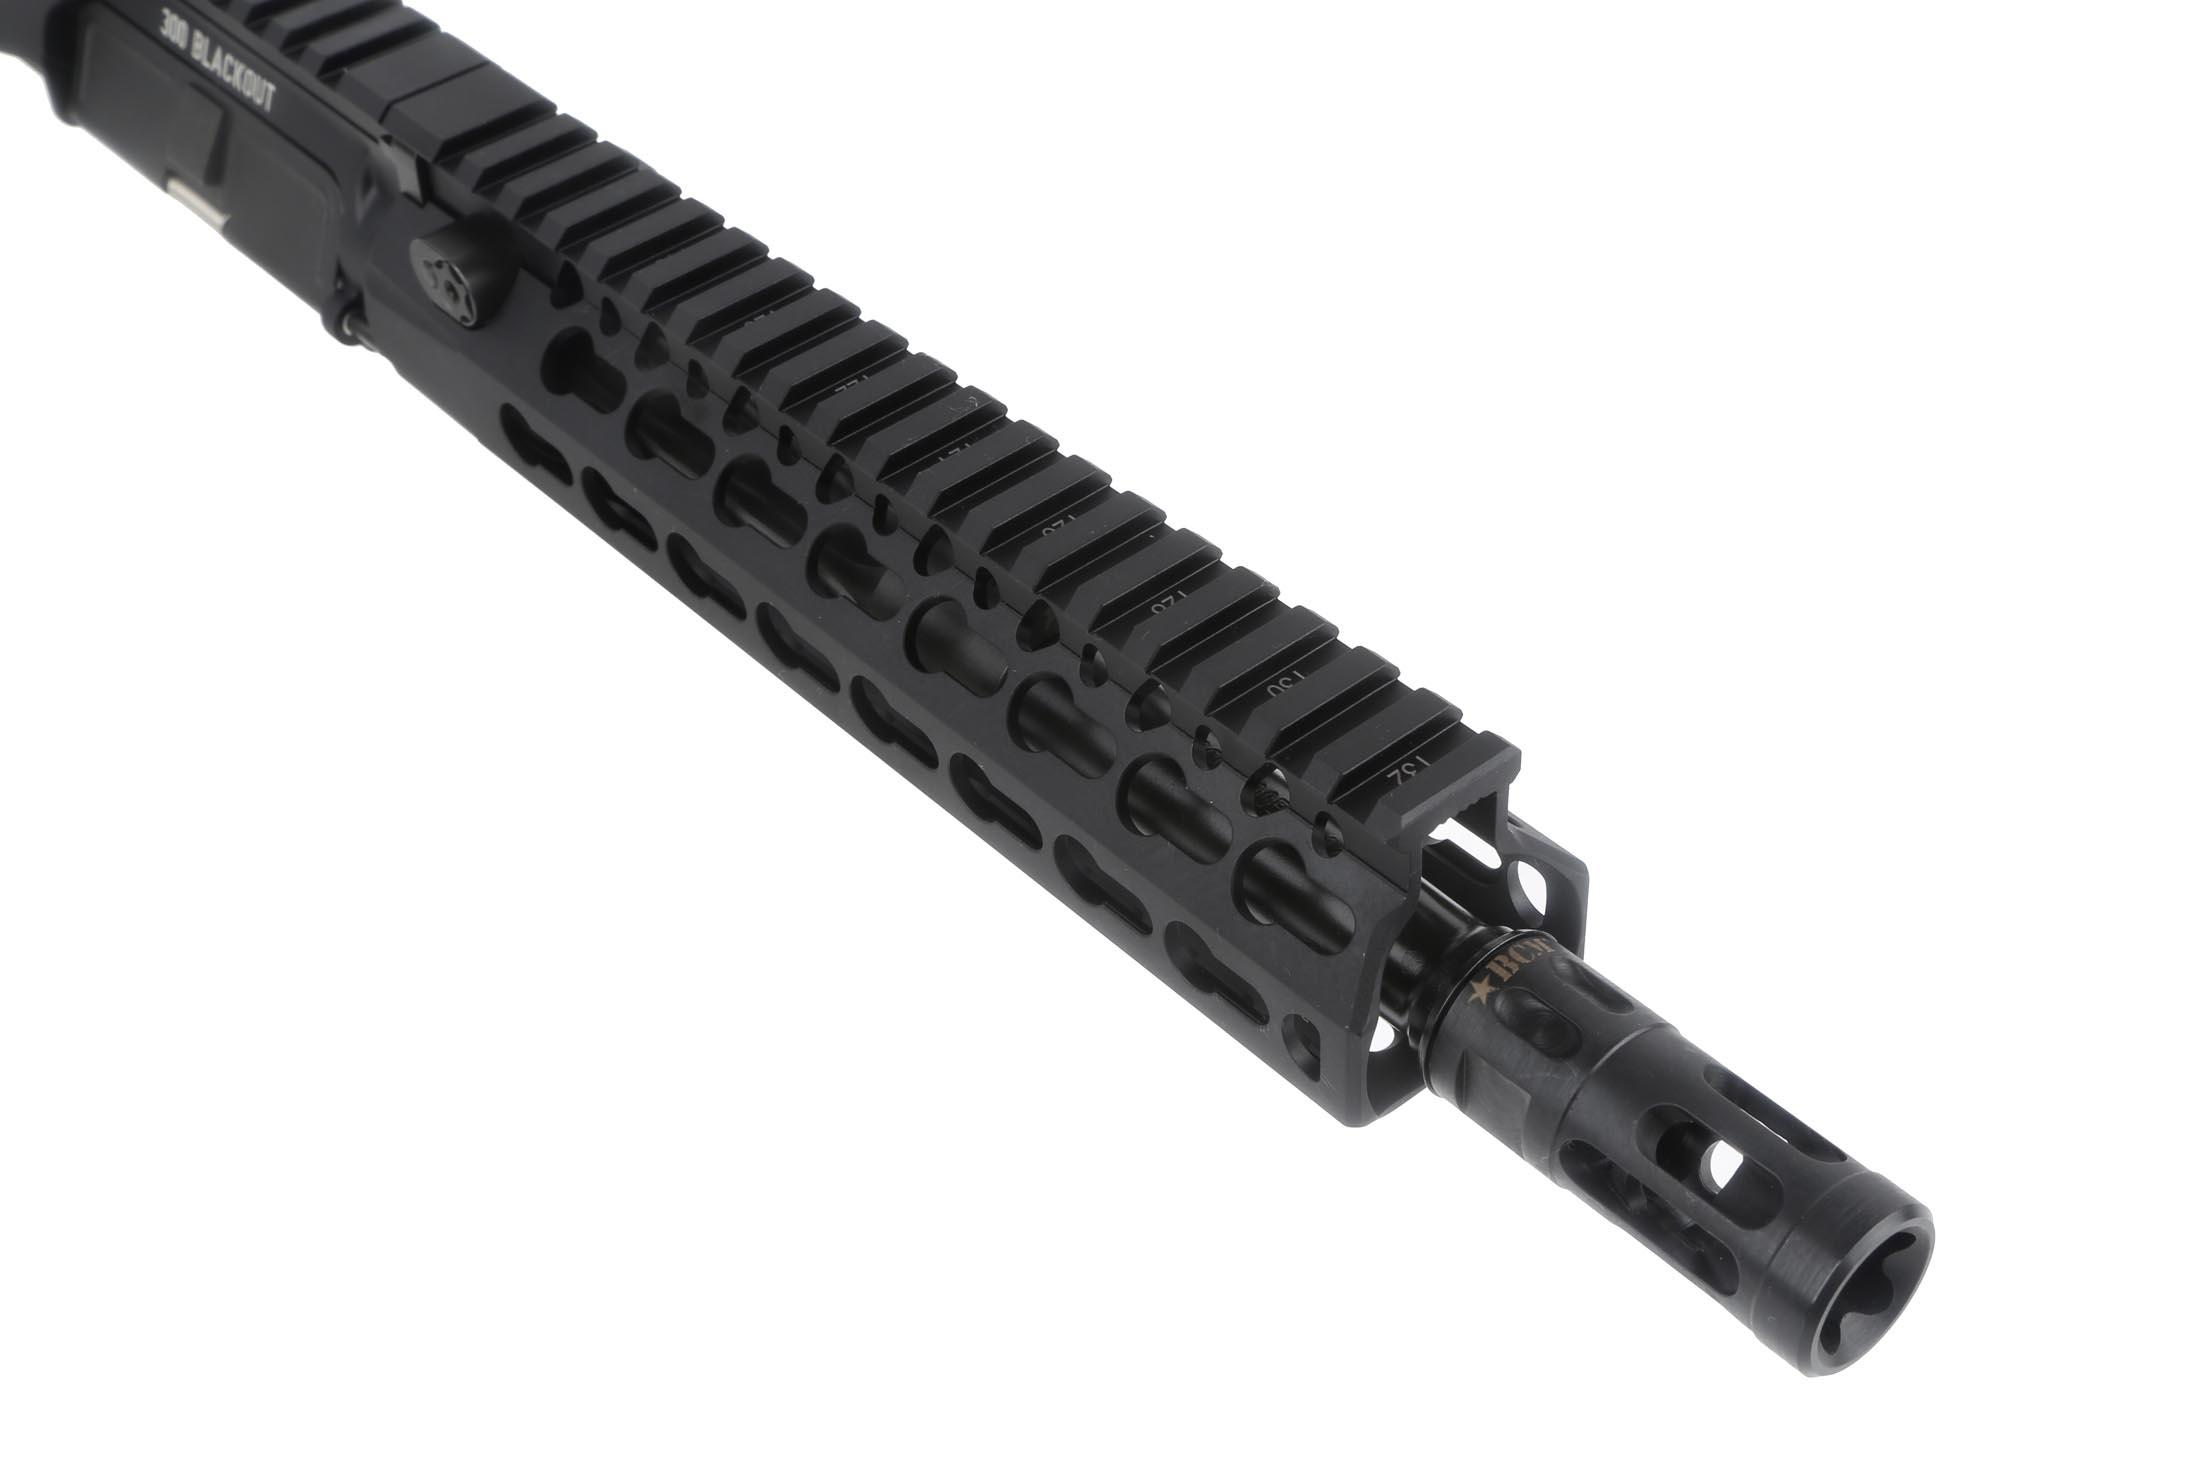 The Bravo Company Manufacturing Barreled 300 BLK Upper features a muzzle brake